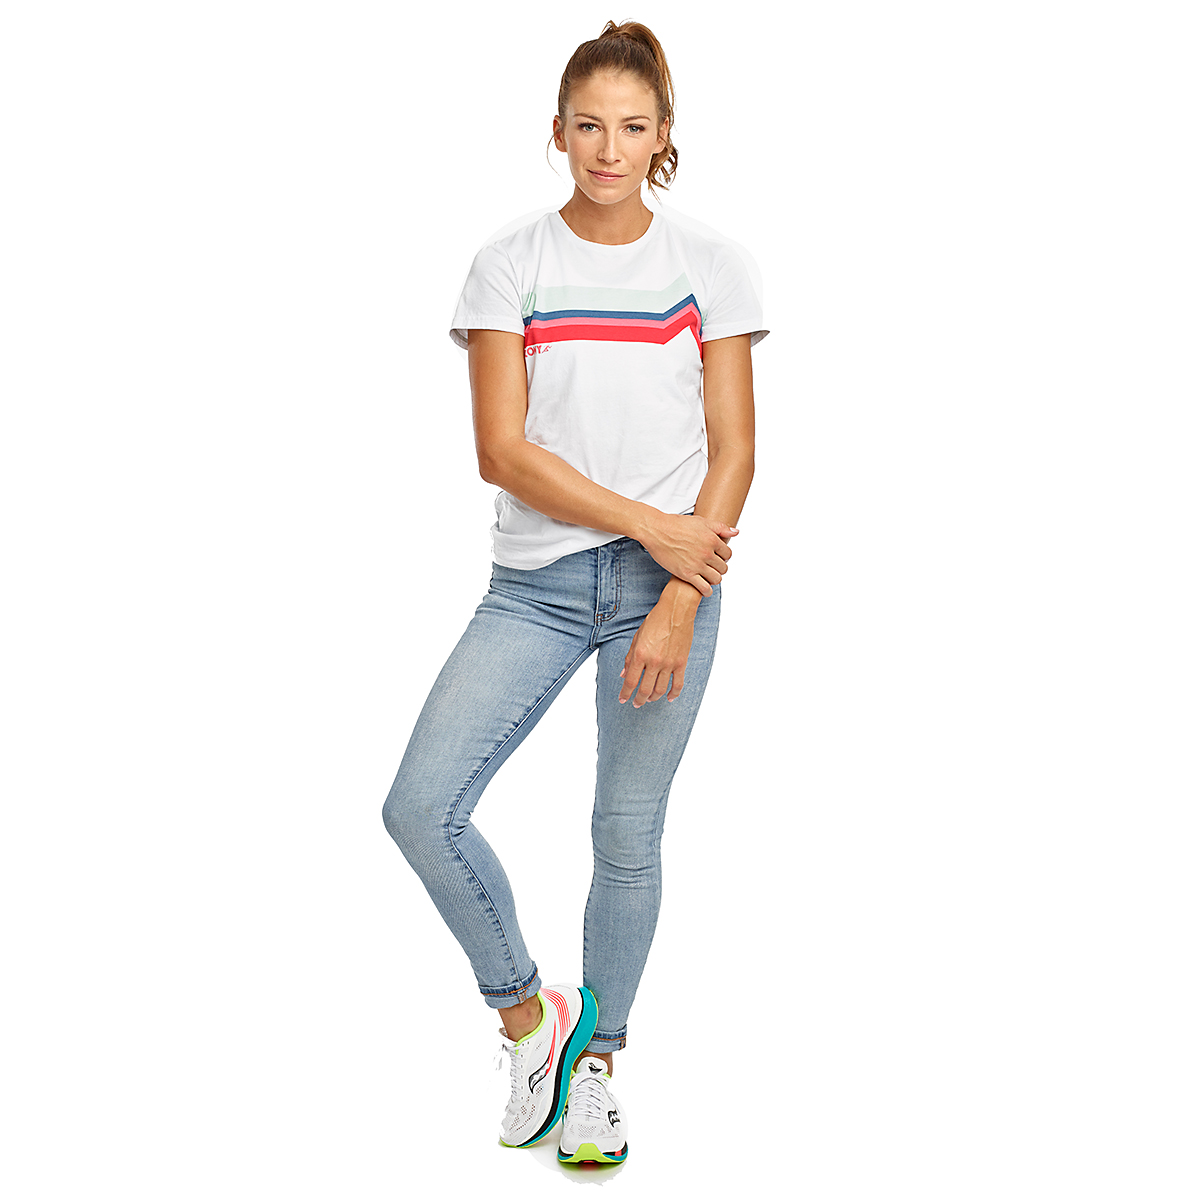 Women's Saucony Rested Short Sleeve - Color: White - Size: XXS, White, large, image 3